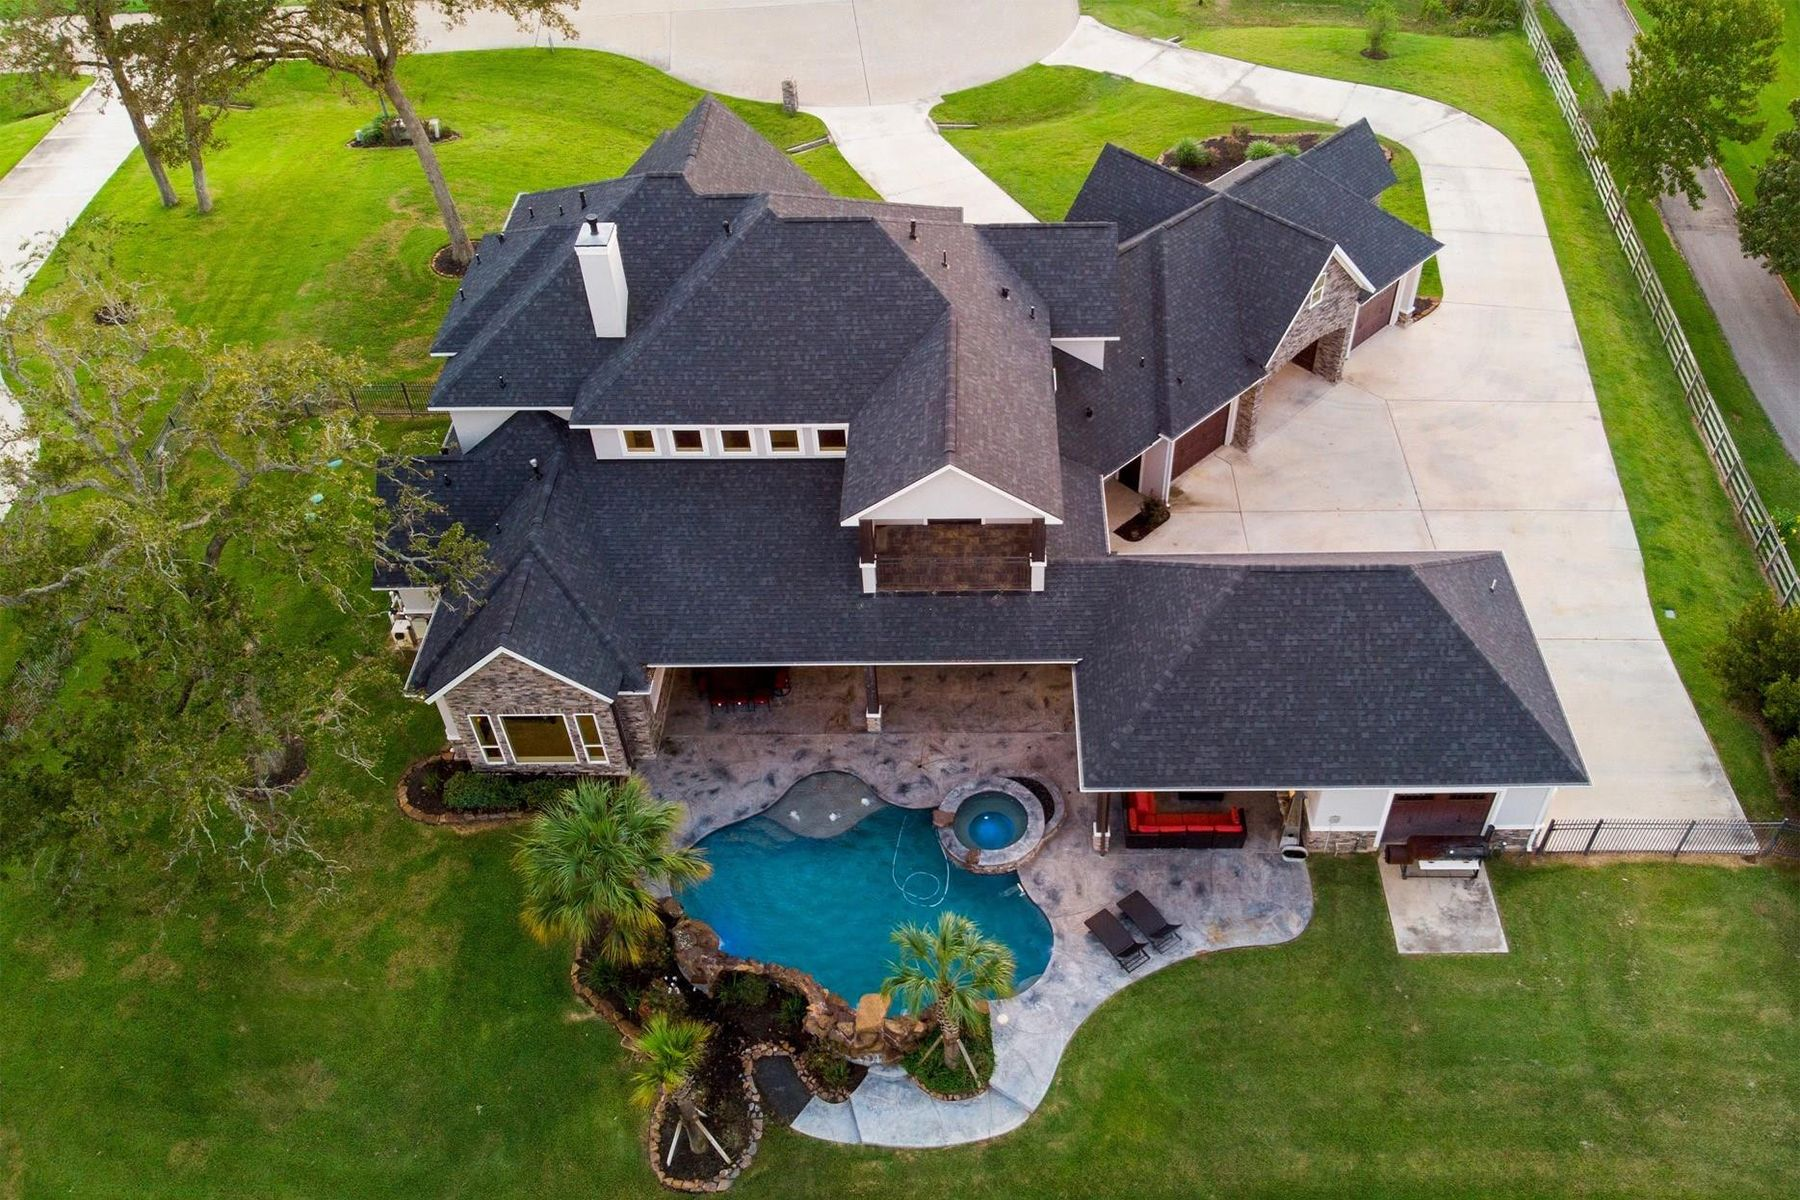 Single Family Homes for Sale at 8610 Lofty Pines Richmond, Texas 77406 United States